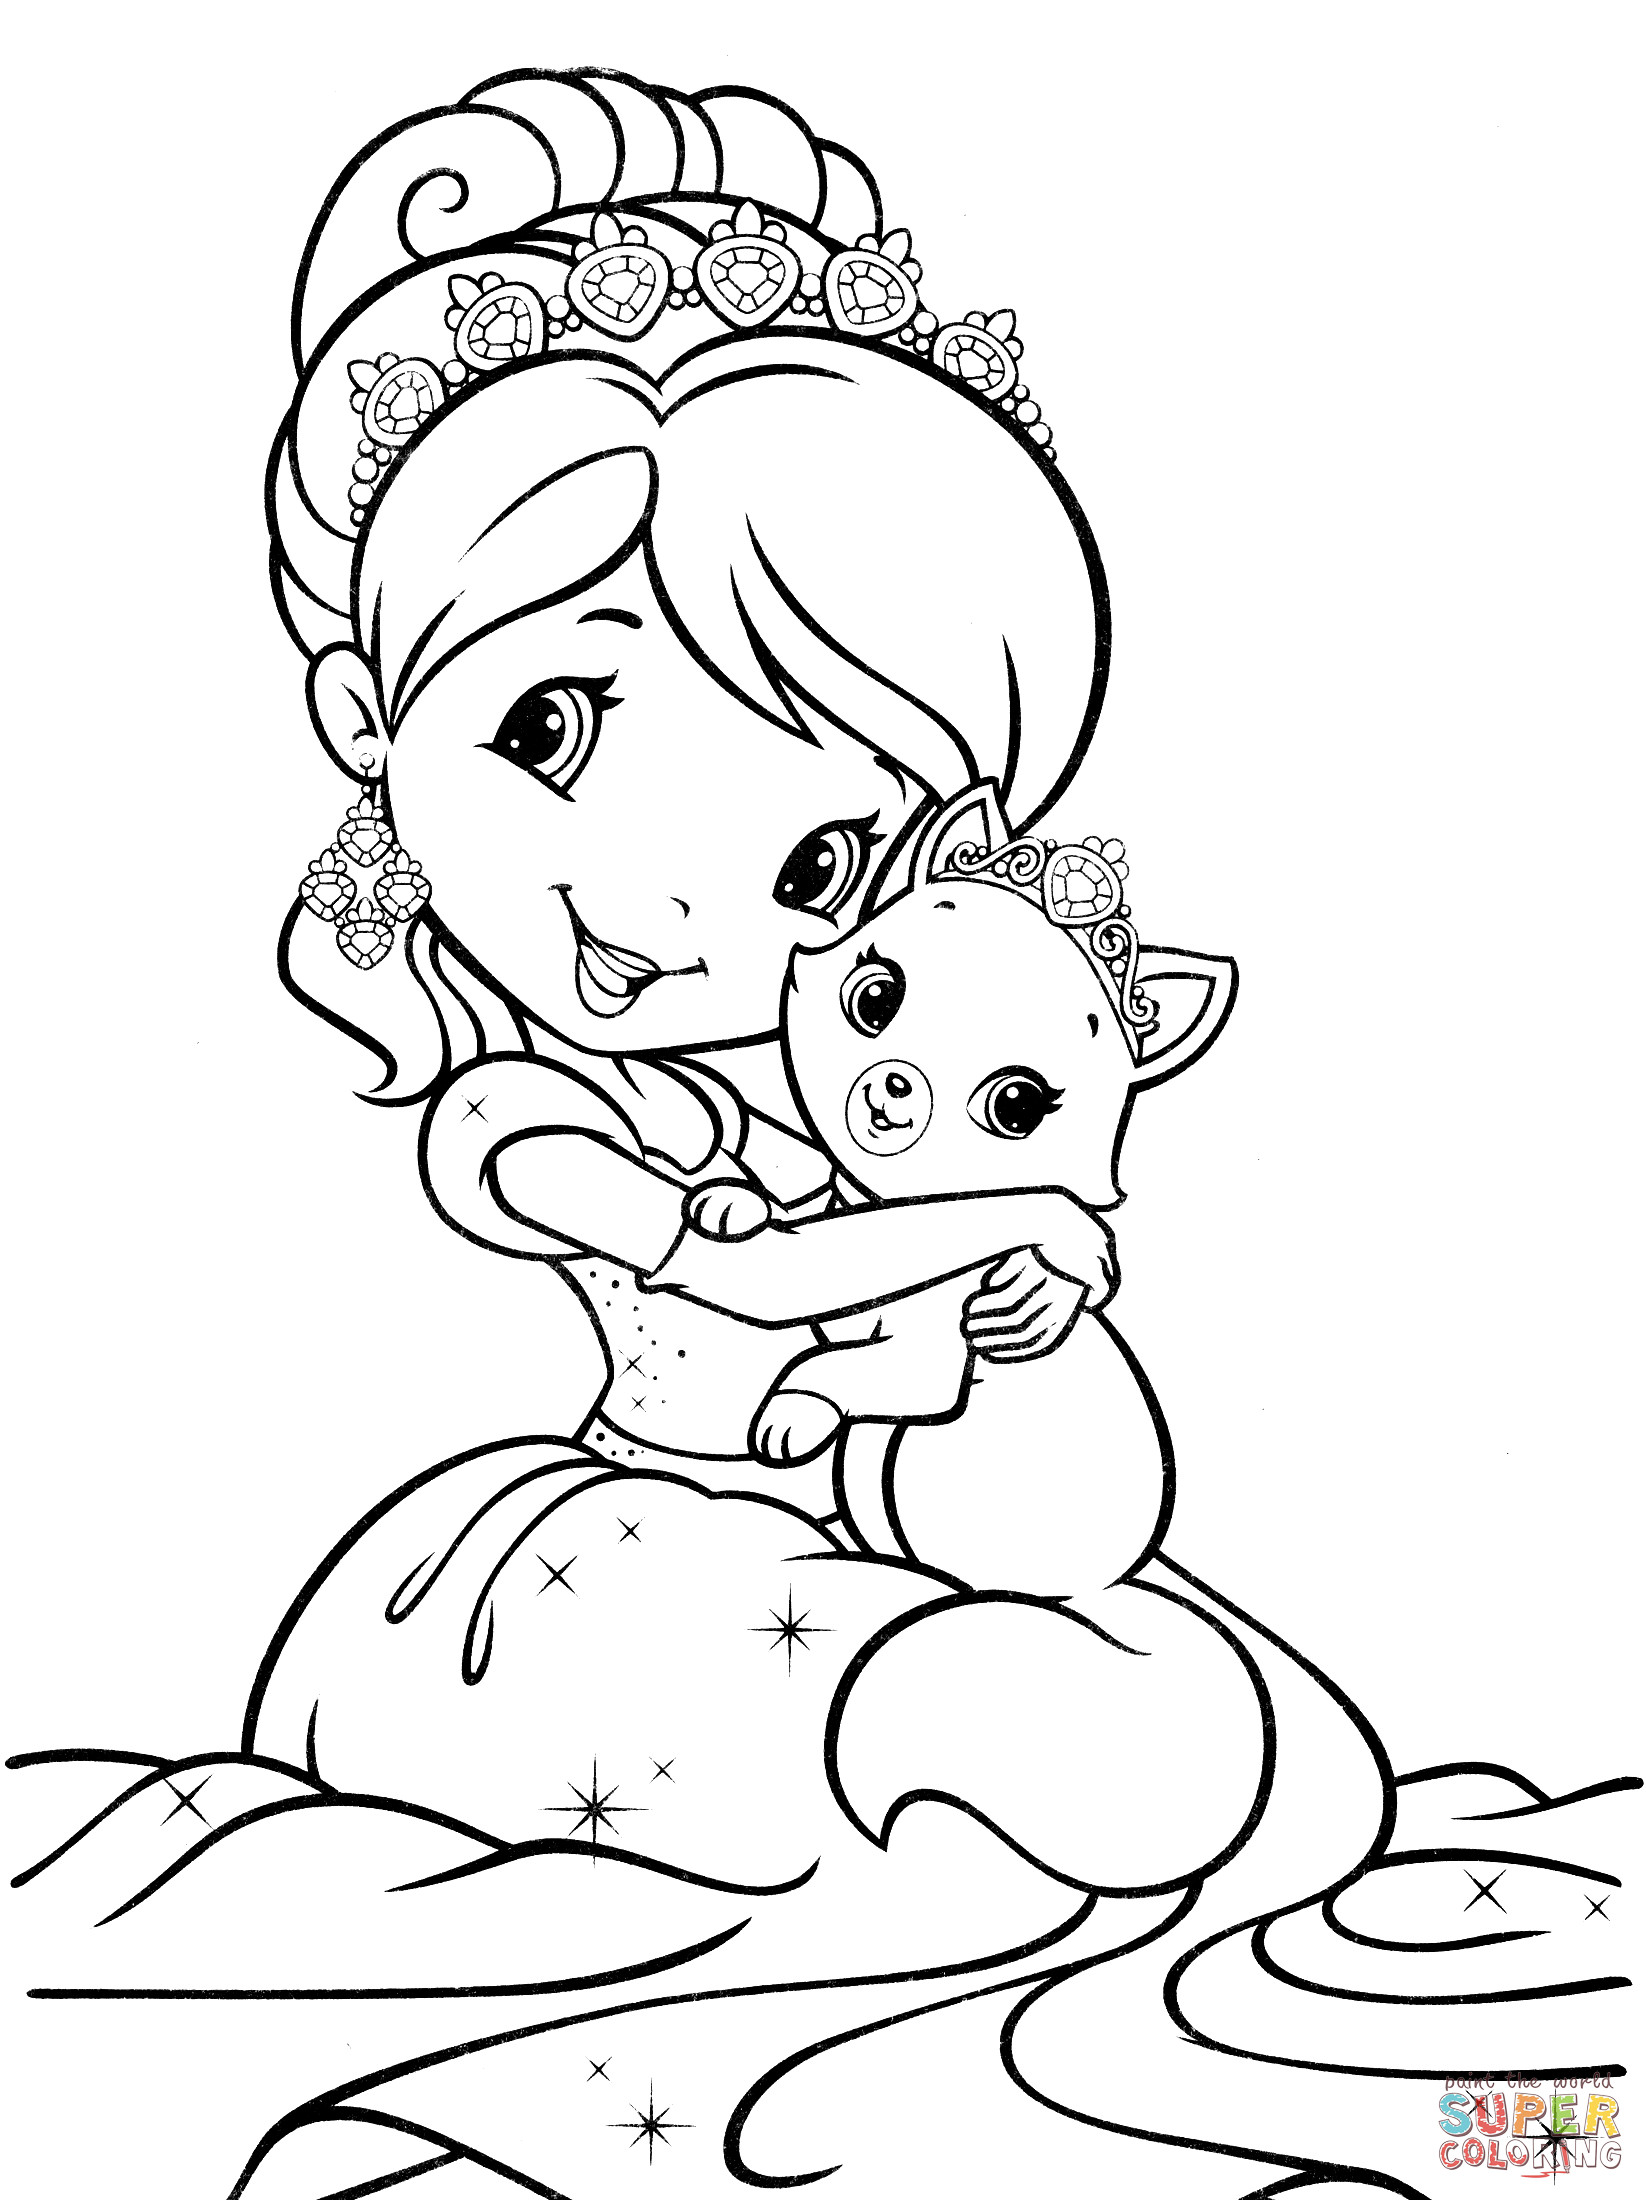 strawberry shortcake coloring pictures strawberry shortcake coloring pages coloring pages coloring pictures shortcake strawberry